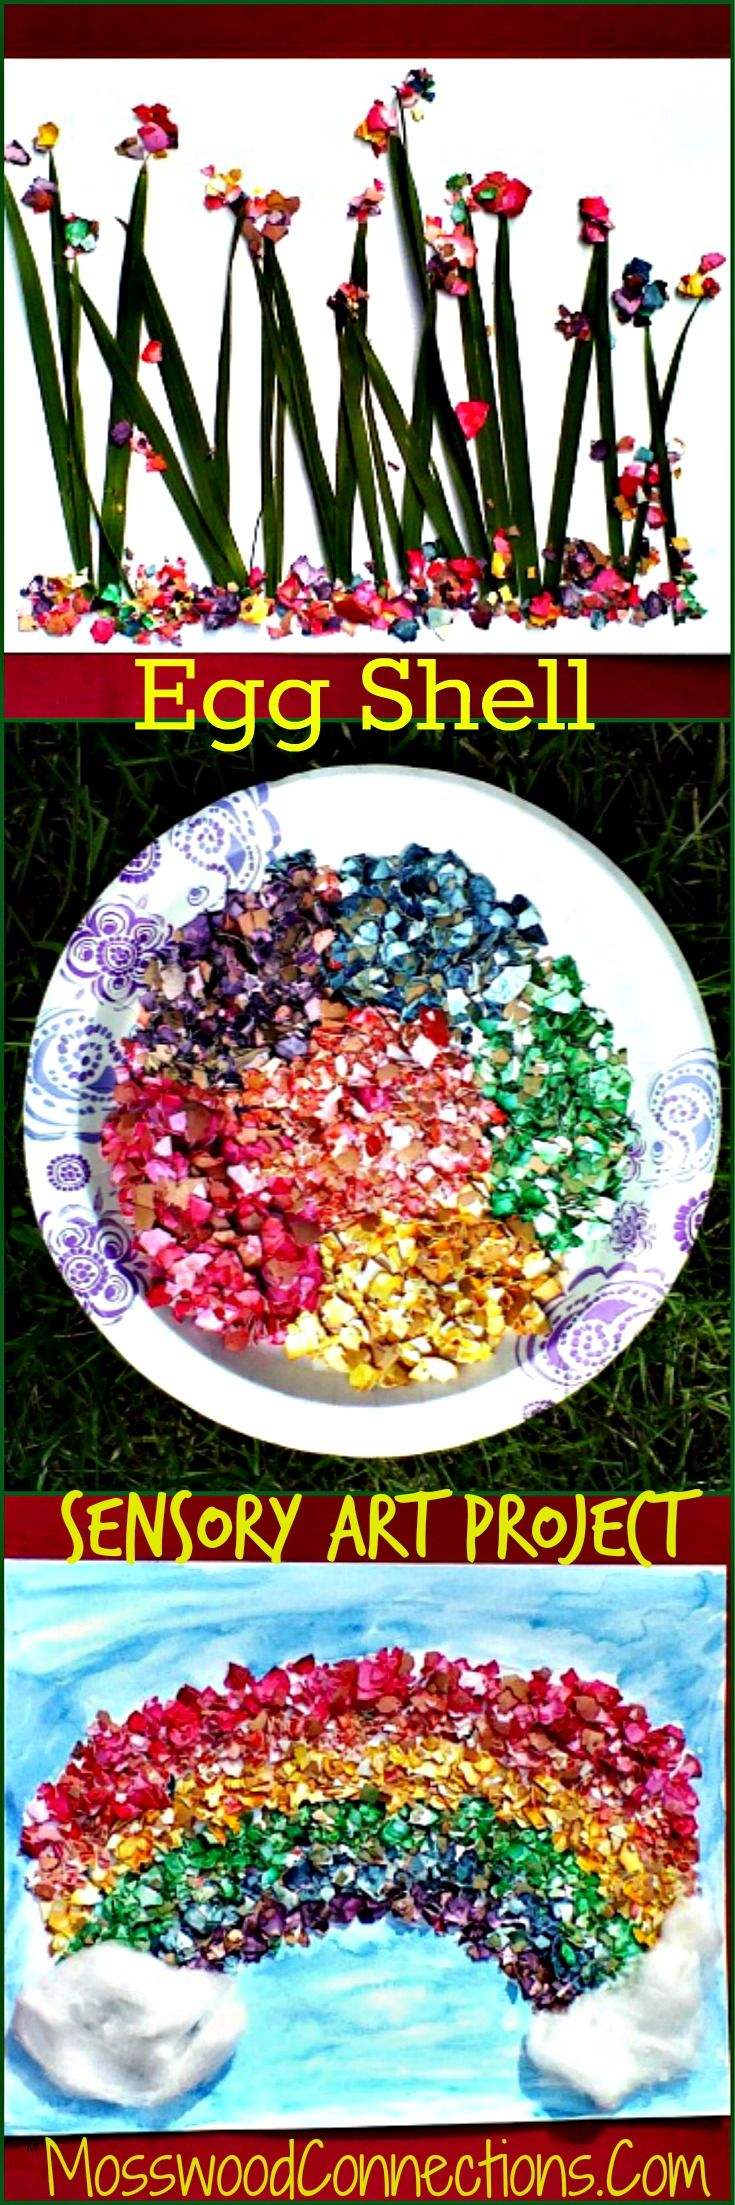 Egg Shell Sensory Art Project Use eggshells to have a fun sensory experience while creating art.